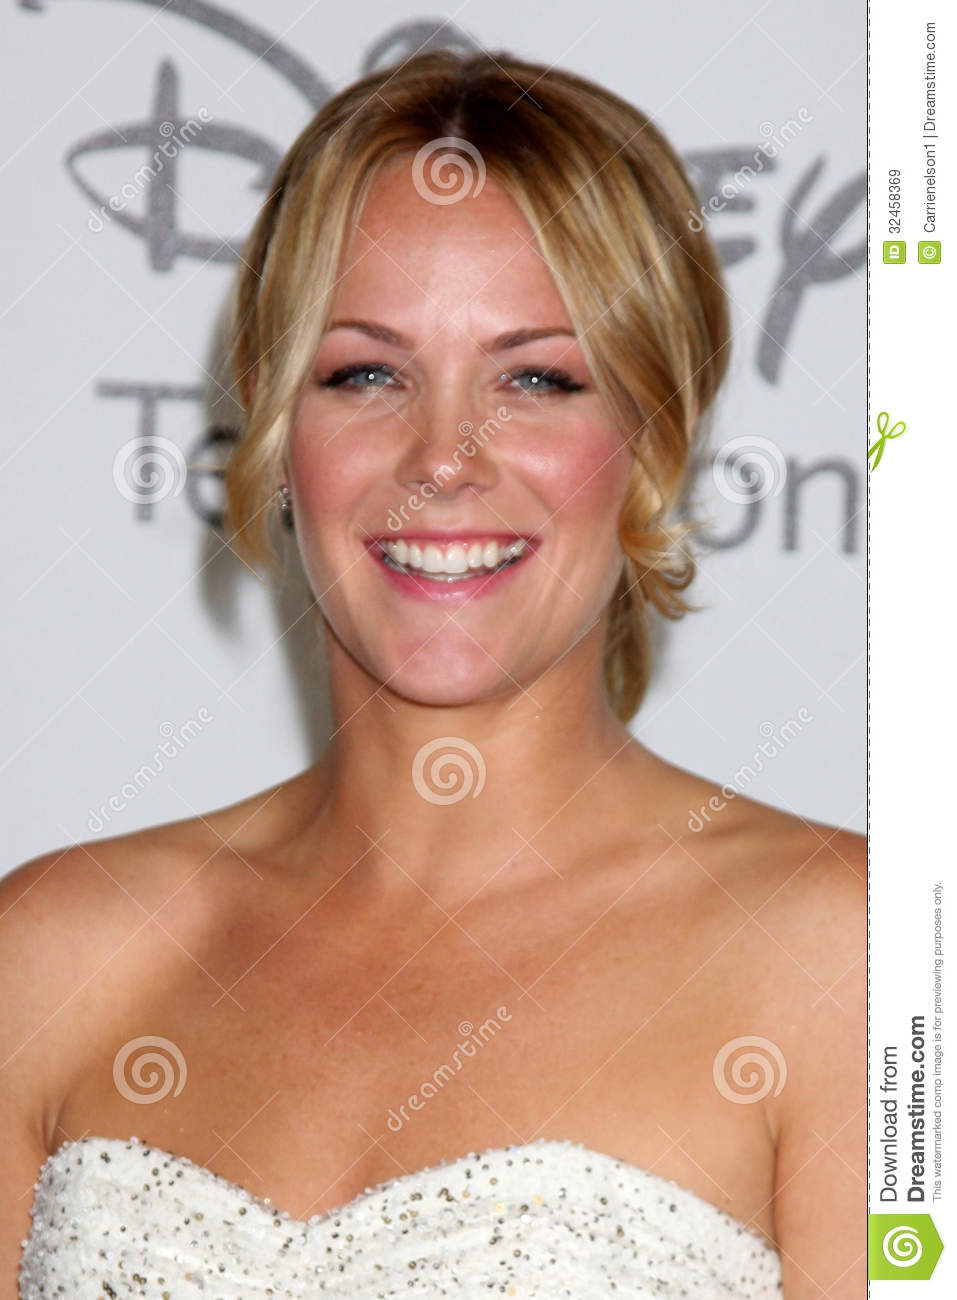 andrea anders net worth